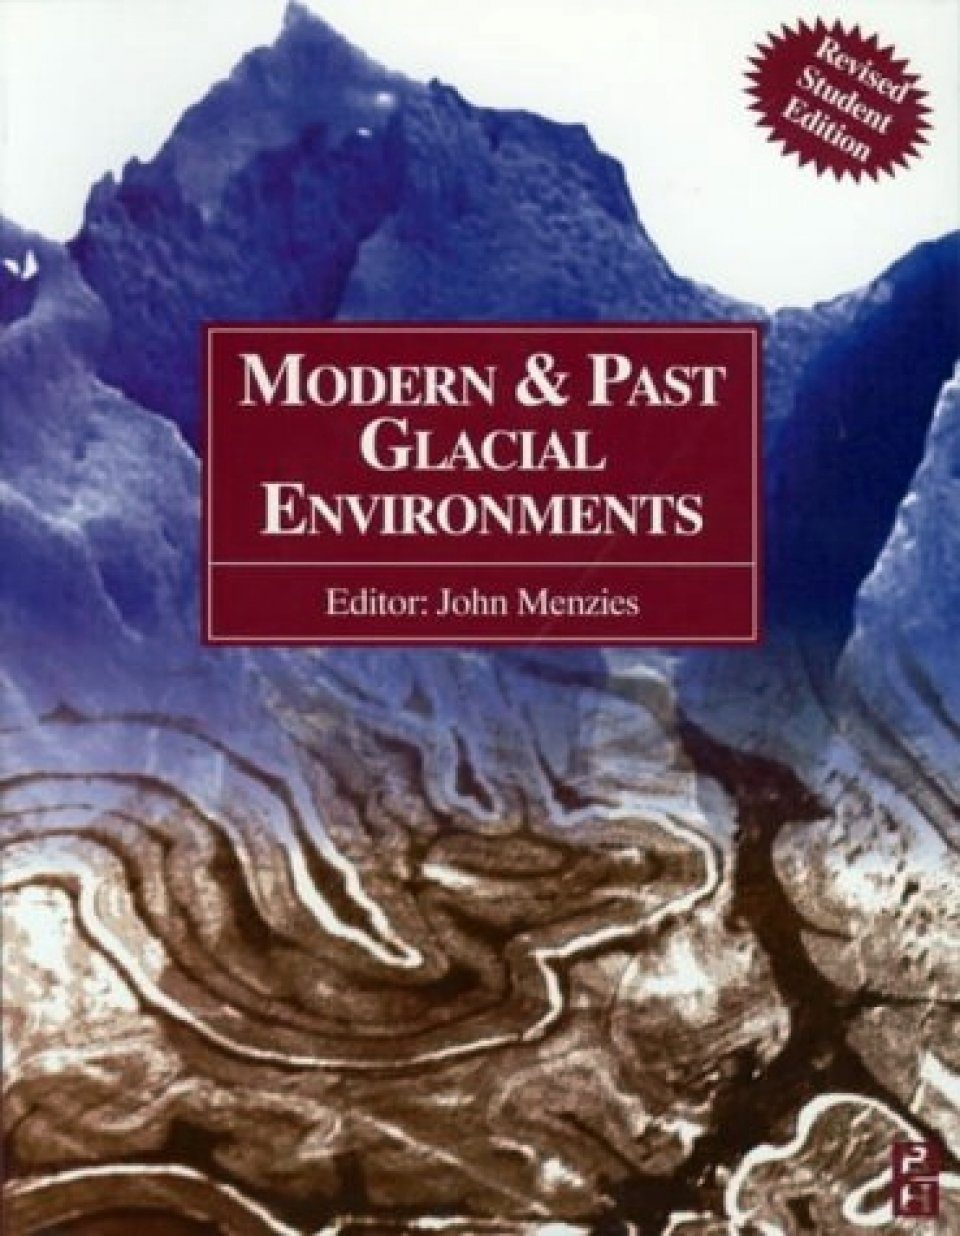 Modern and Past Glacial Environments